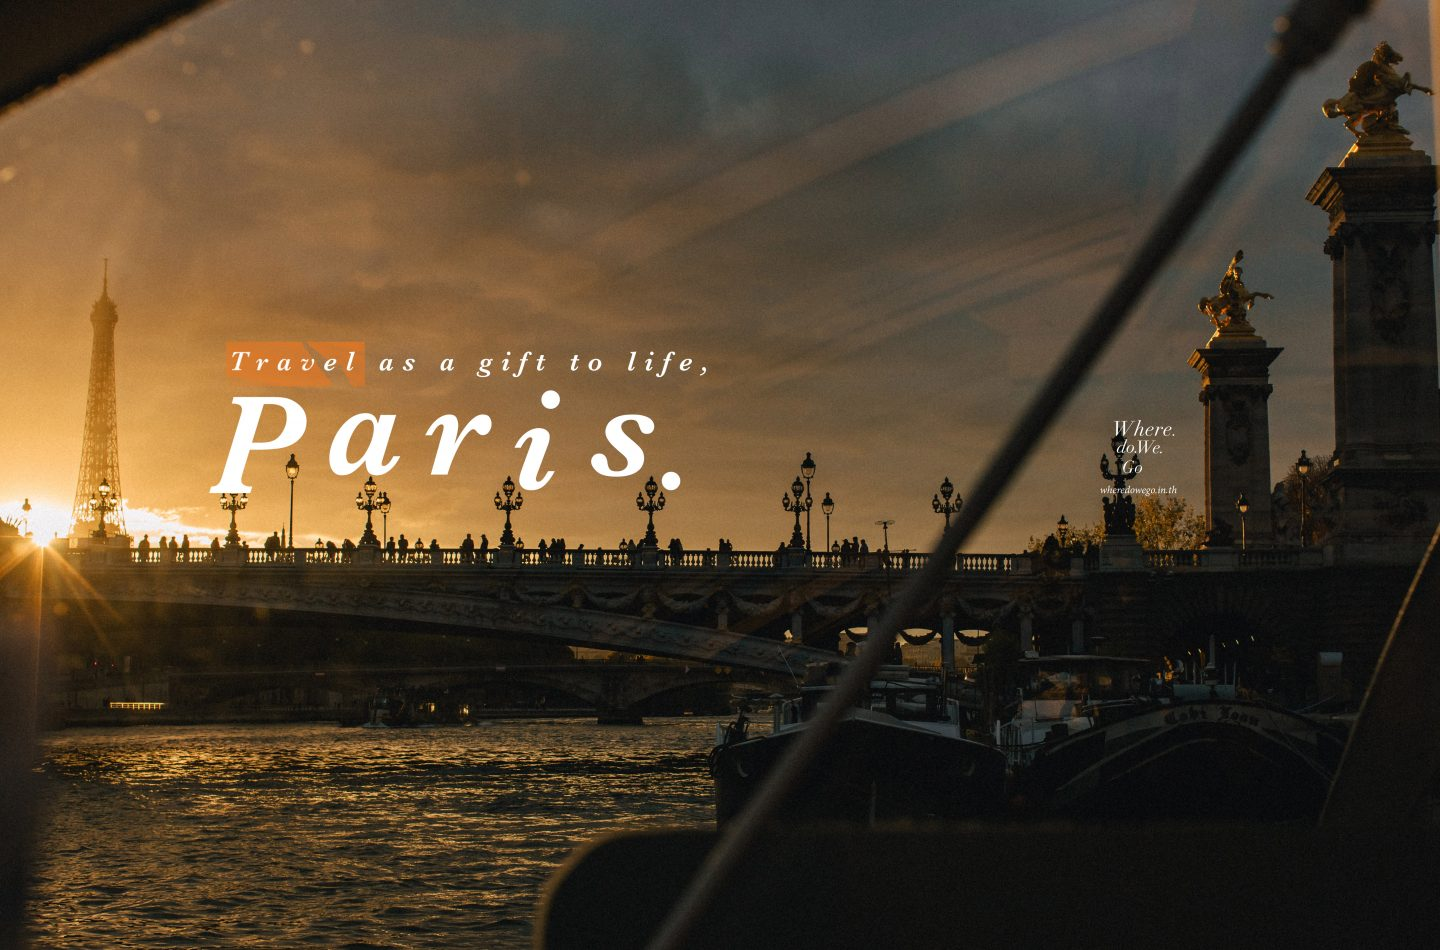 Travel as a gift to life, PARIS.